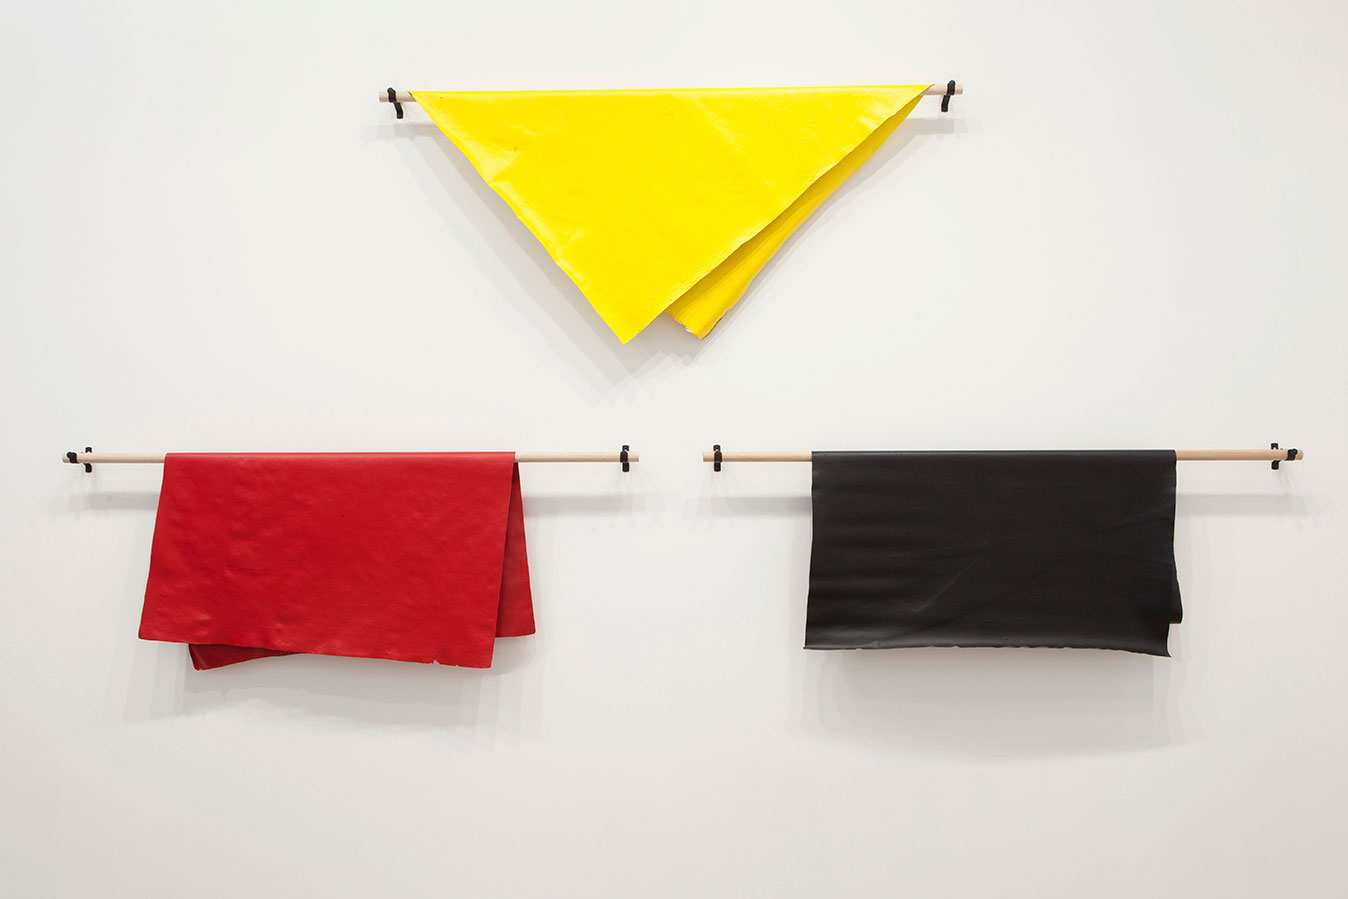 Archie MOORE 'Dermis' 2012 | acrylic paint, wooden dowel, steel brackets | QUT Art Collection | Purchased 2012